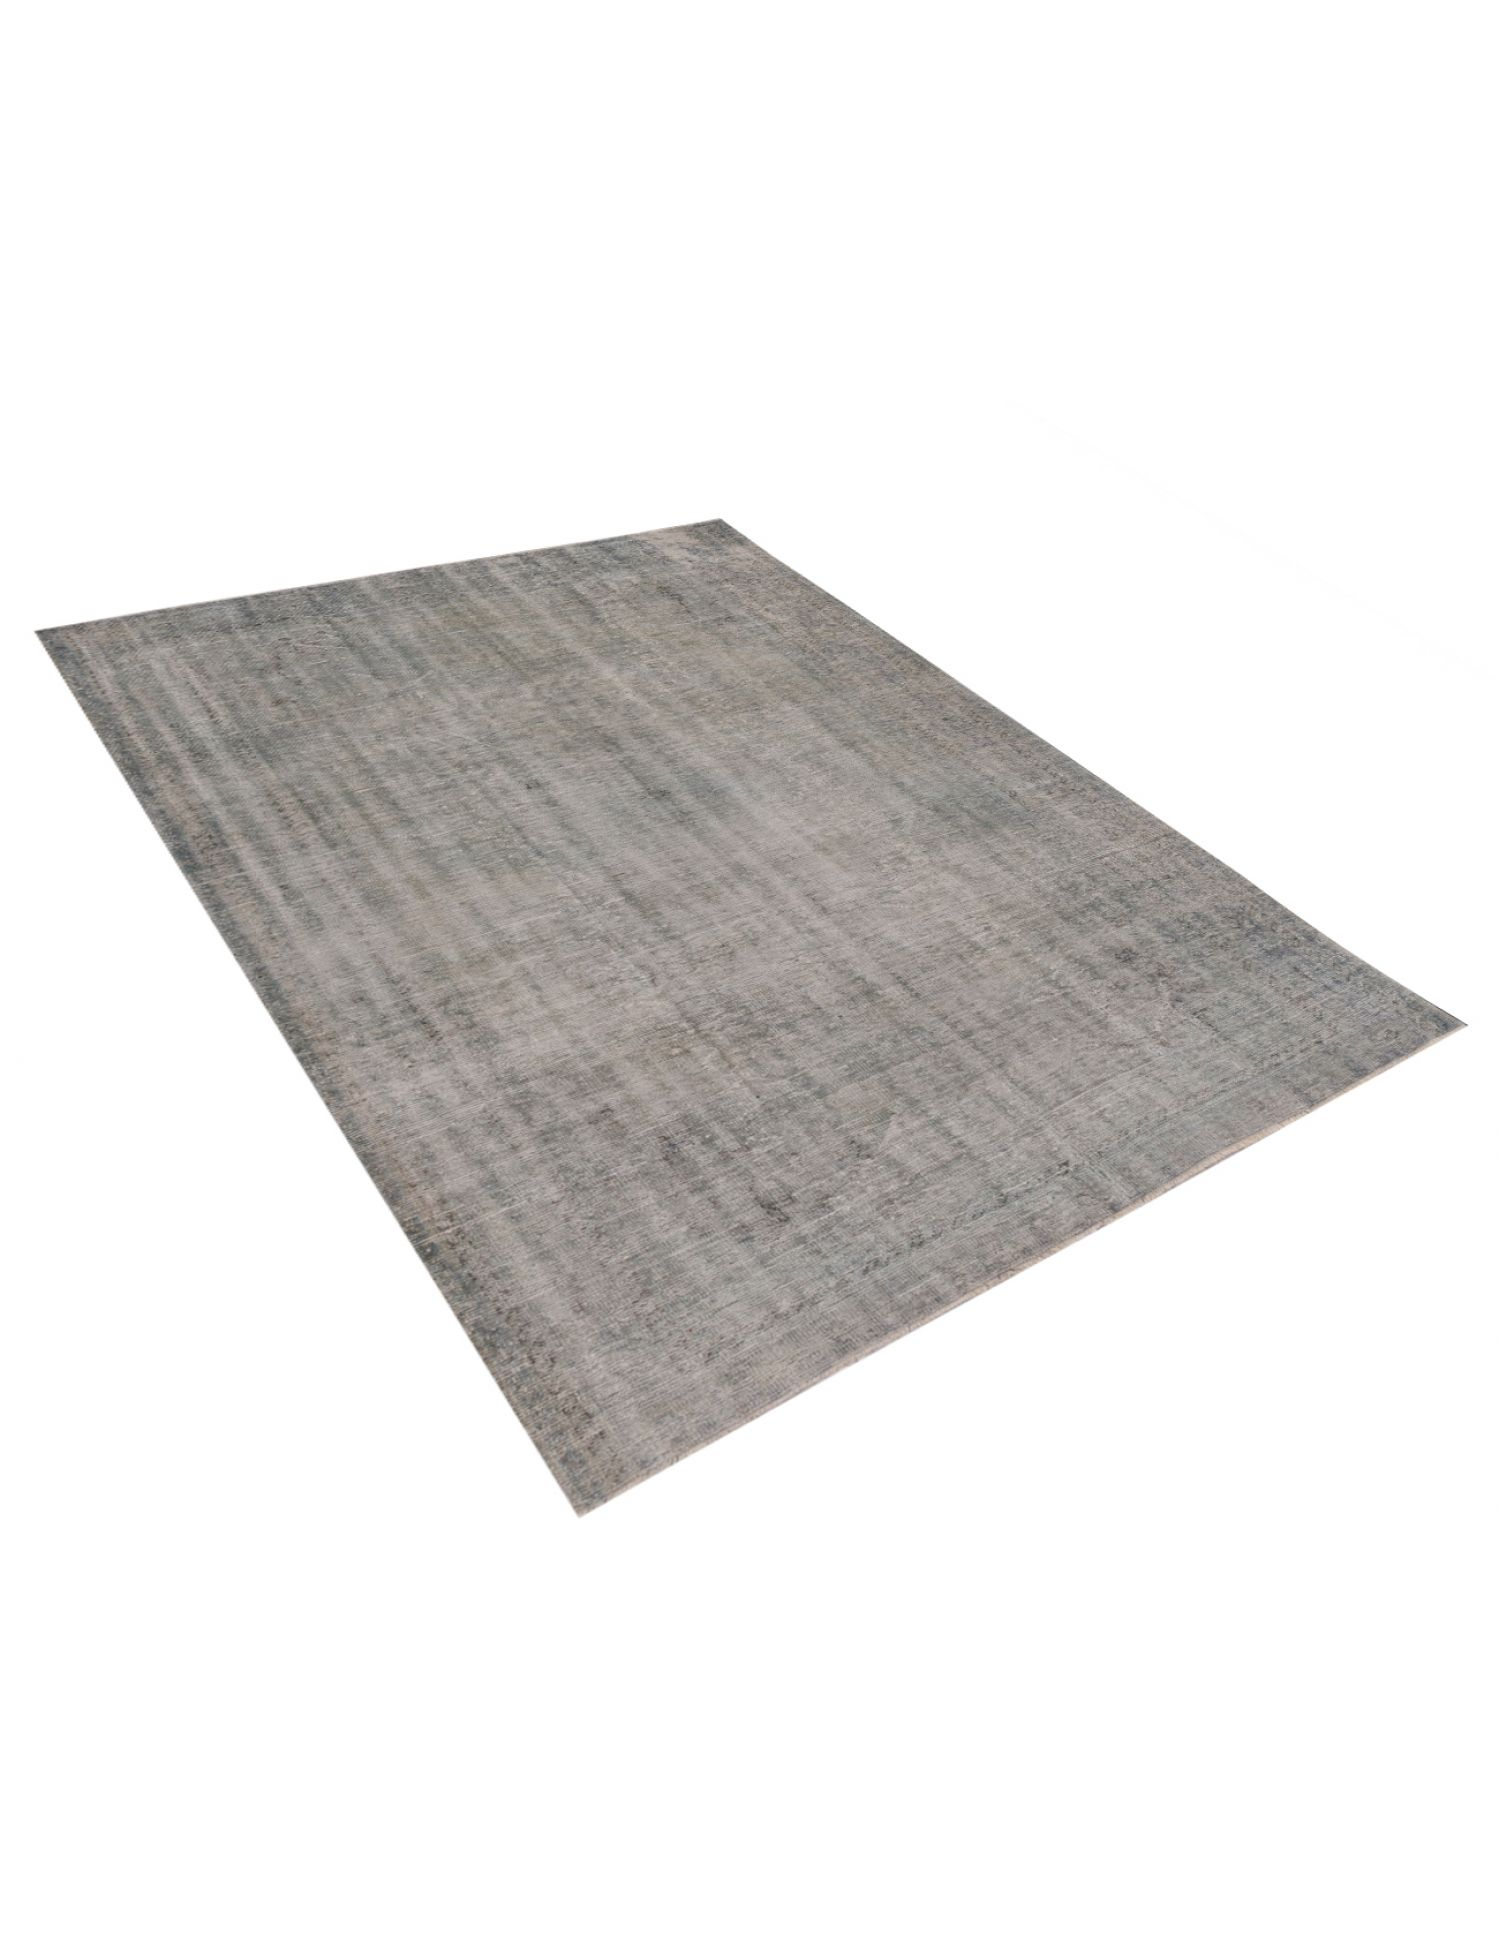 Vintage Carpet  grey <br/>317 x 211 cm